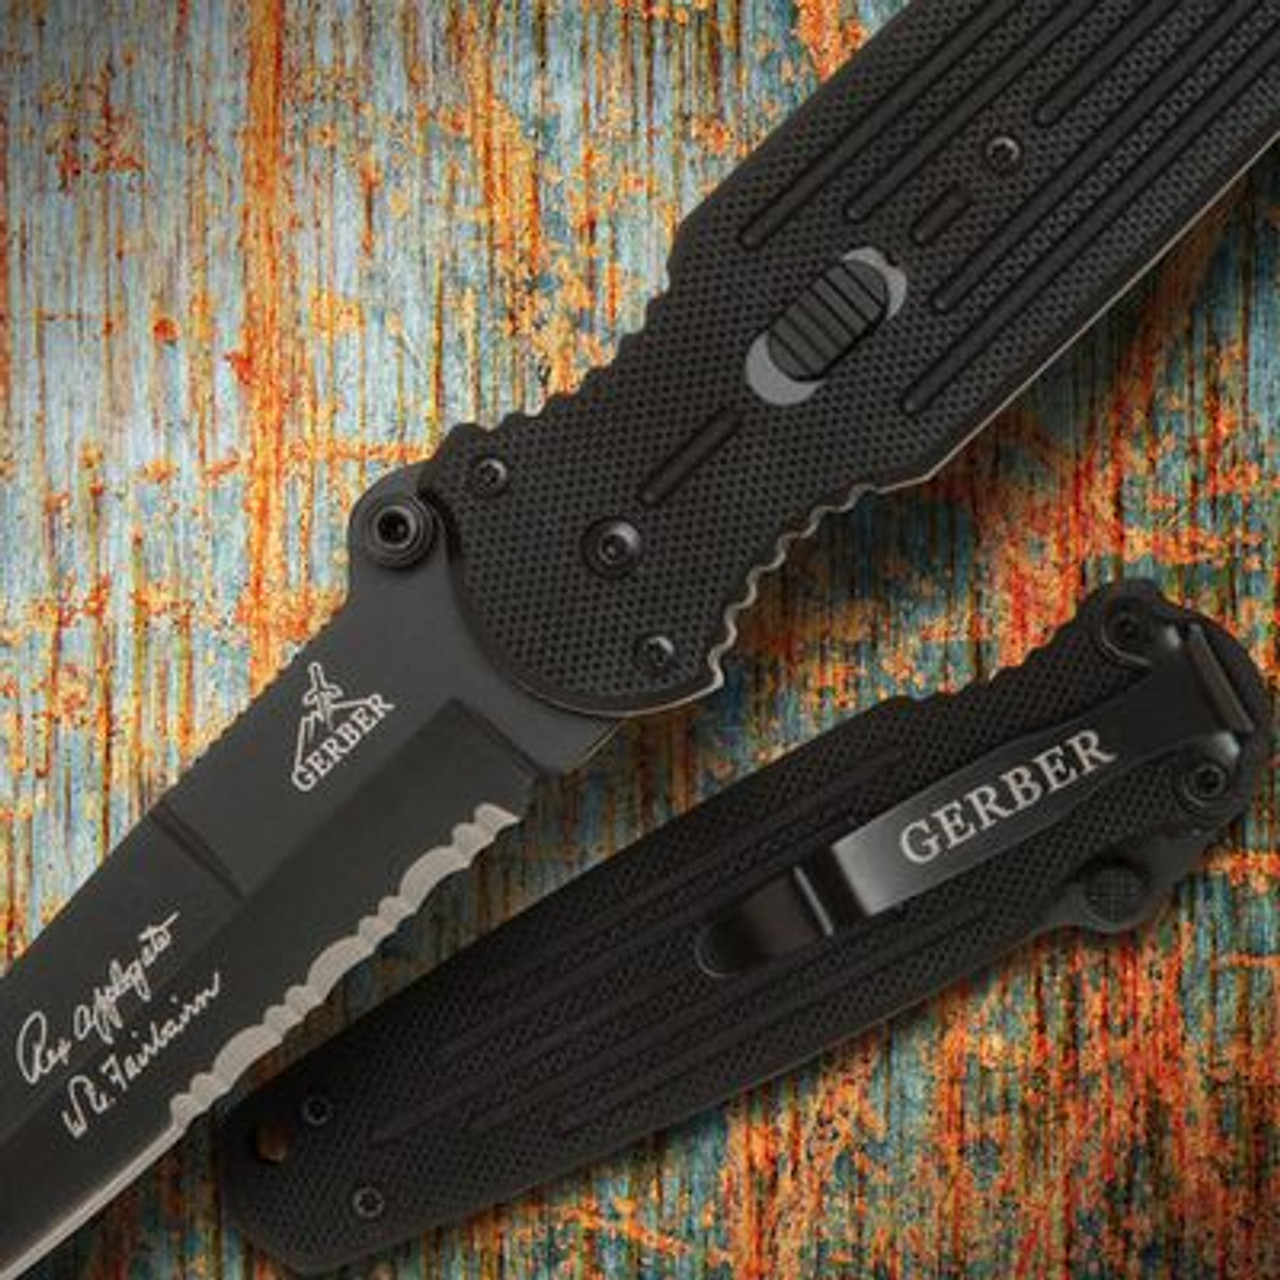 Gerber Covert FAST Assisted Opening Pocket Knife - GB01966